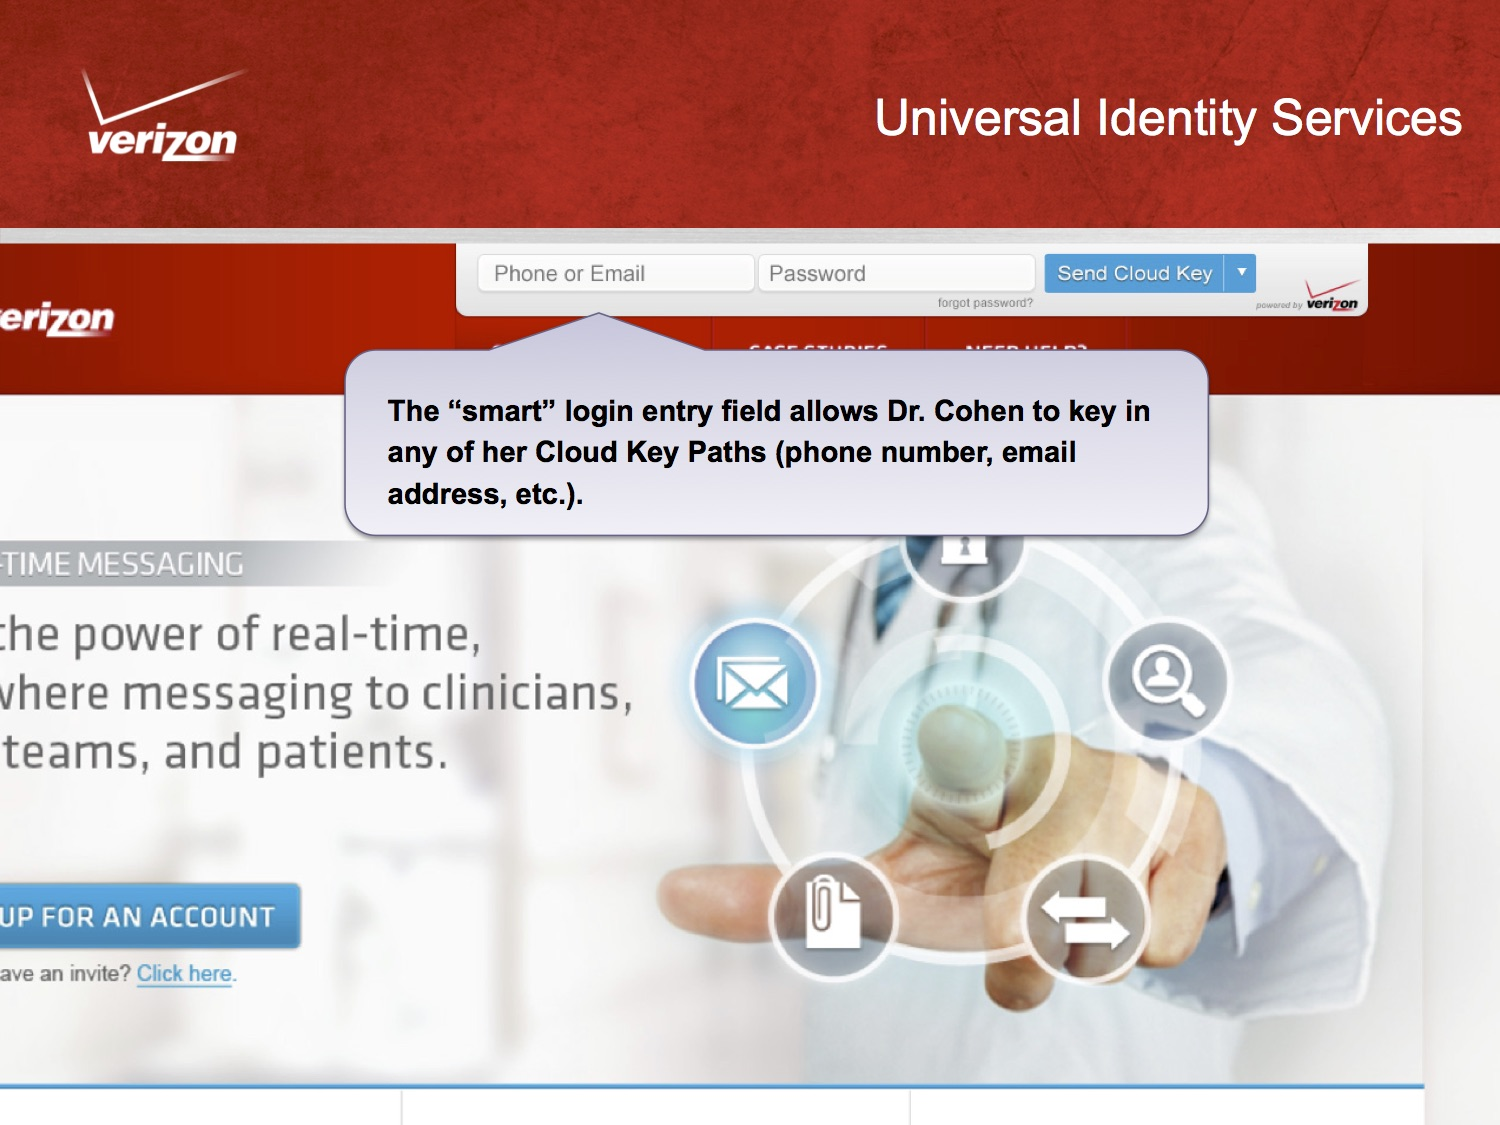 img/verizon-uis/designsbytravis-ideate-Verizon-UIS-HIMSS-Demo15.jpg